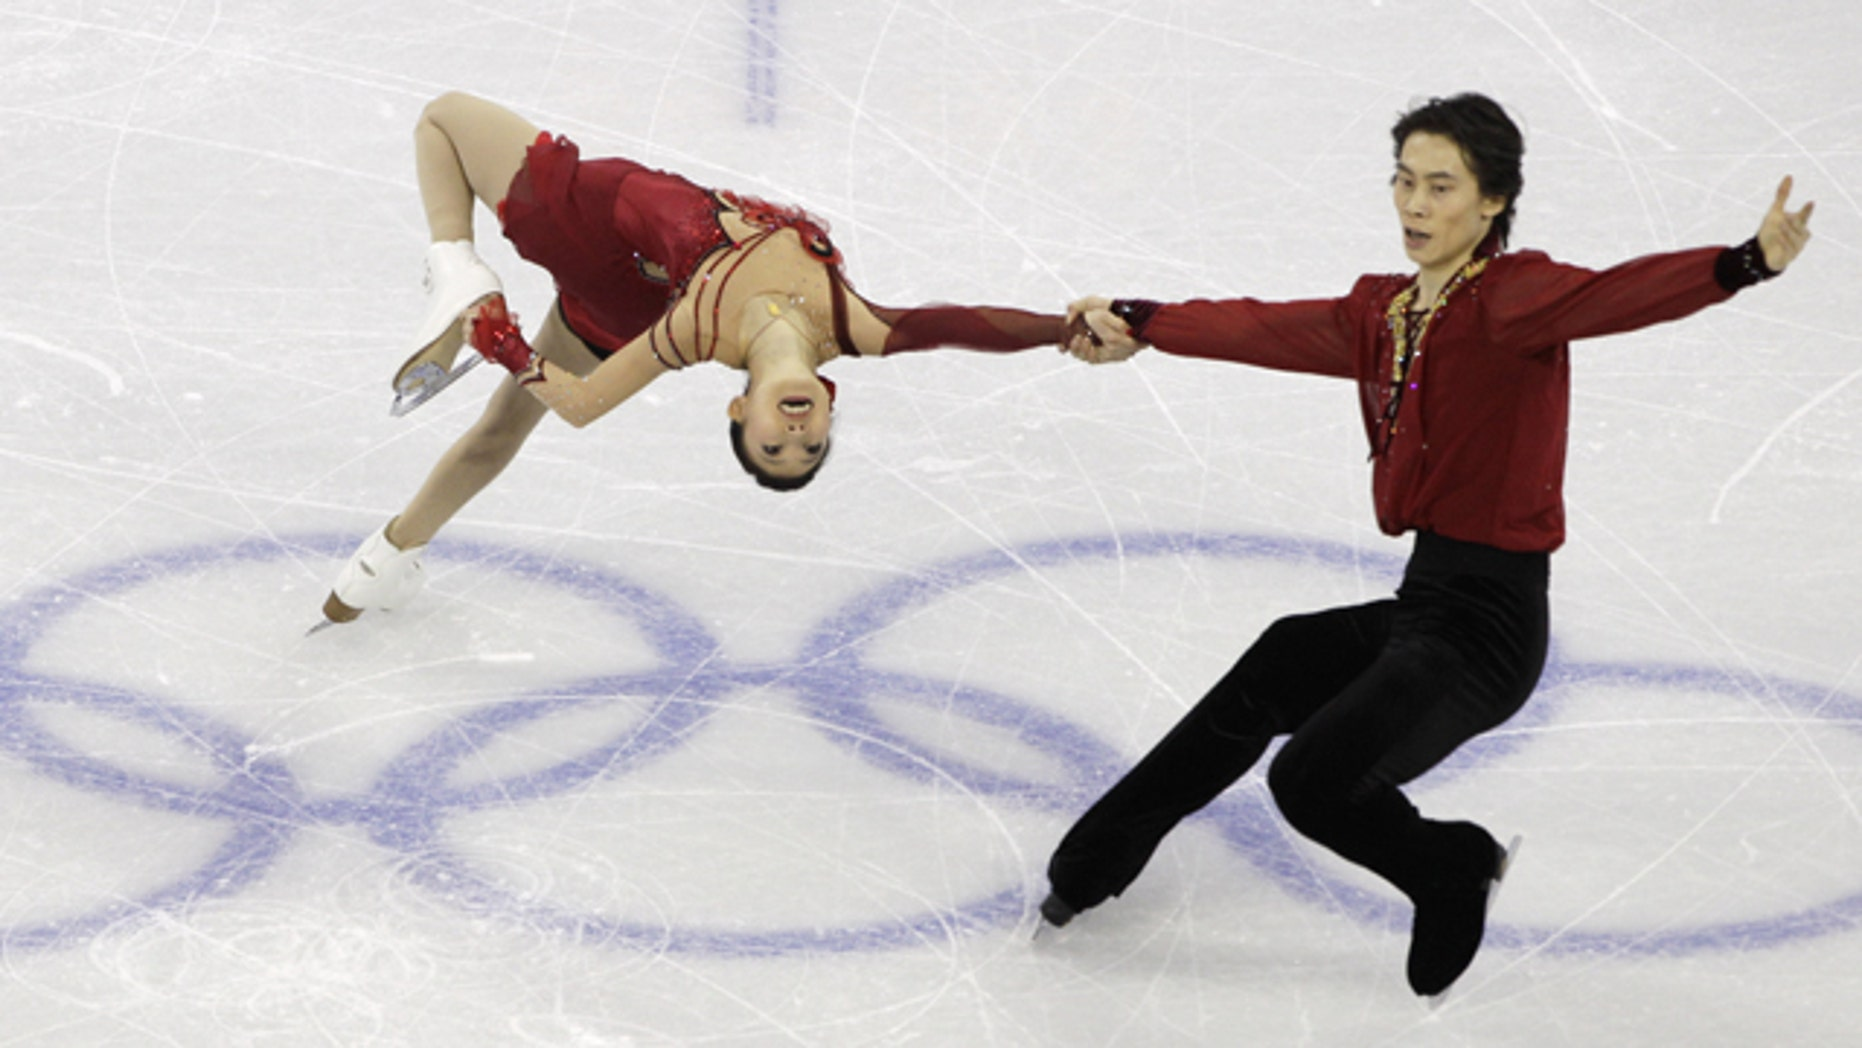 China's Pang Qing and Tong Jian perform their pairs free program during the figure skating competition at the Vancouver 2010 Olympics in Vancouver, British Columbia, Monday, Feb. 15, 2010.